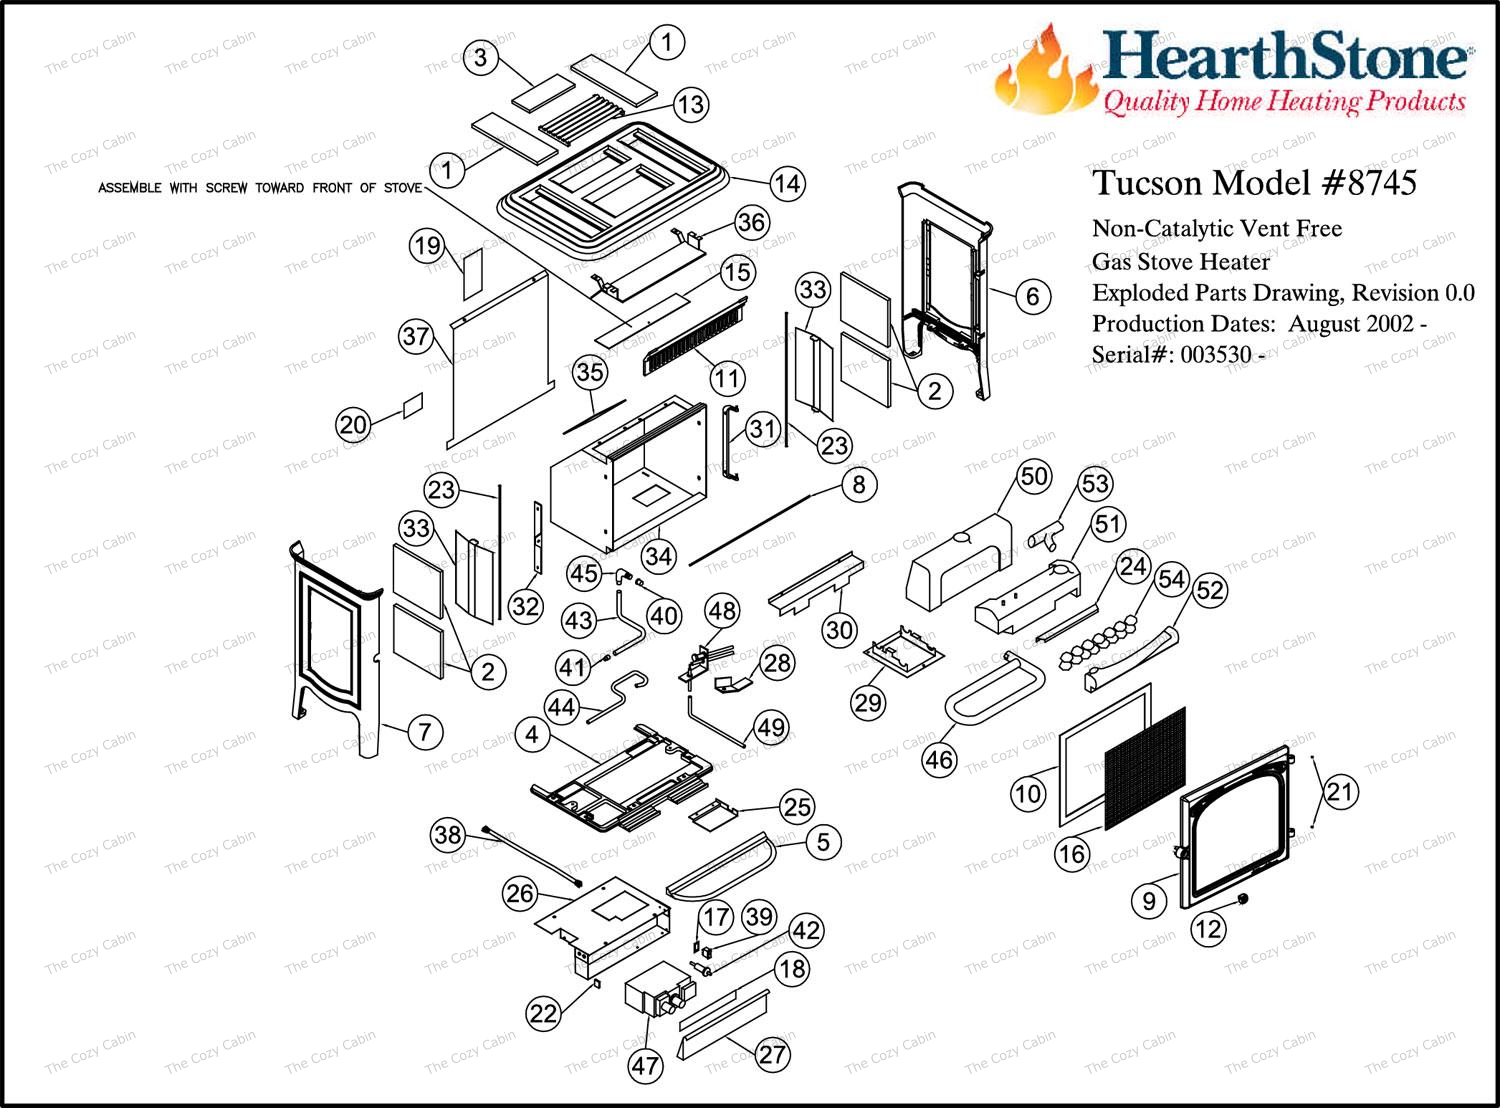 Tucson Vf Model 8745 Parts The Cozy Cabin Hearthstone Store Gas Wall Heater Wiring Diagrams